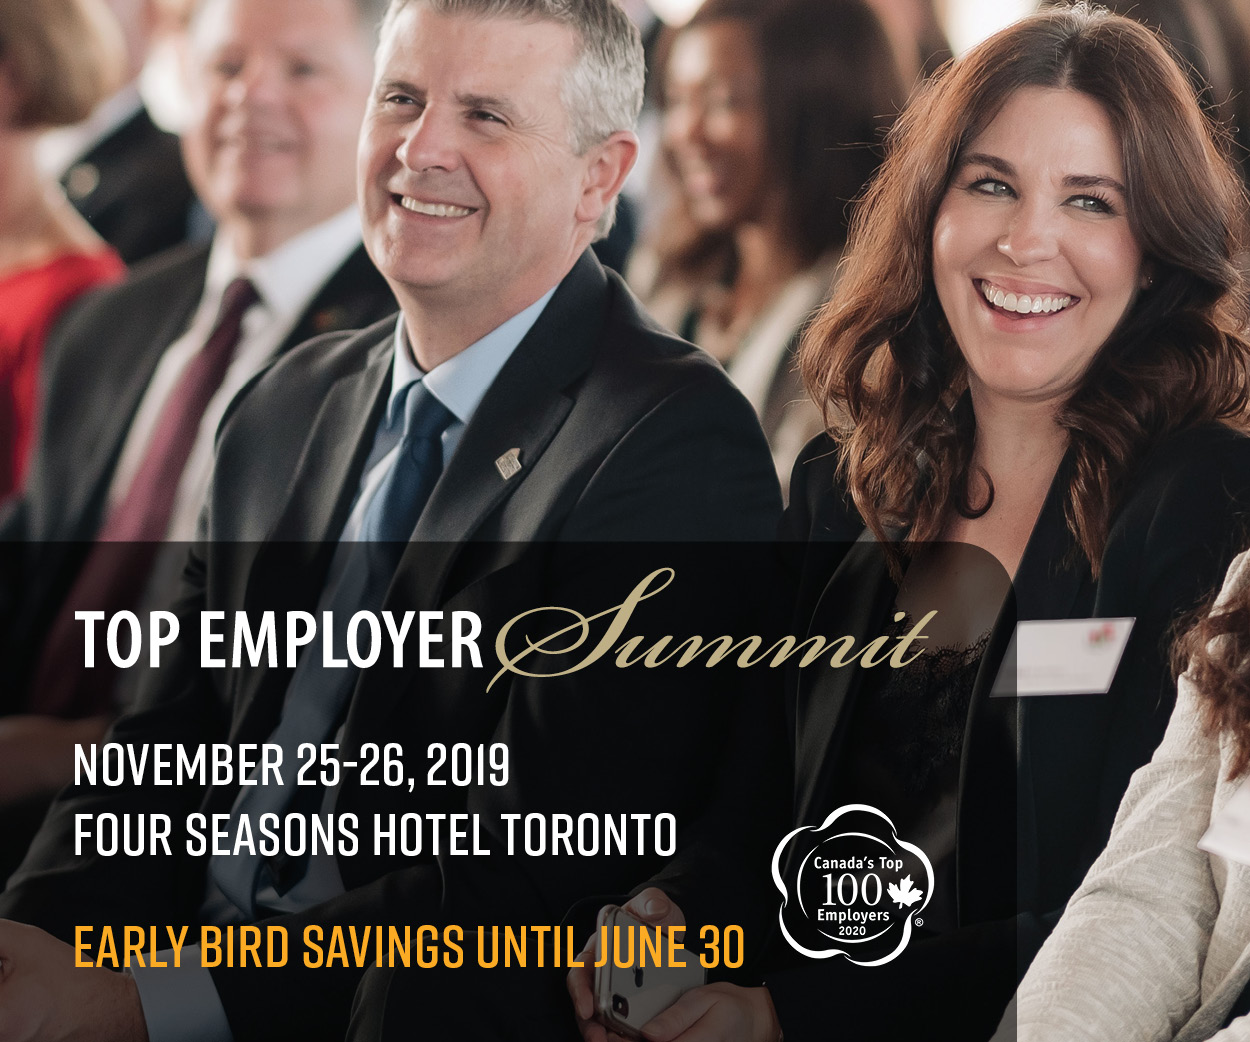 Learn more about the Top Employer Summit